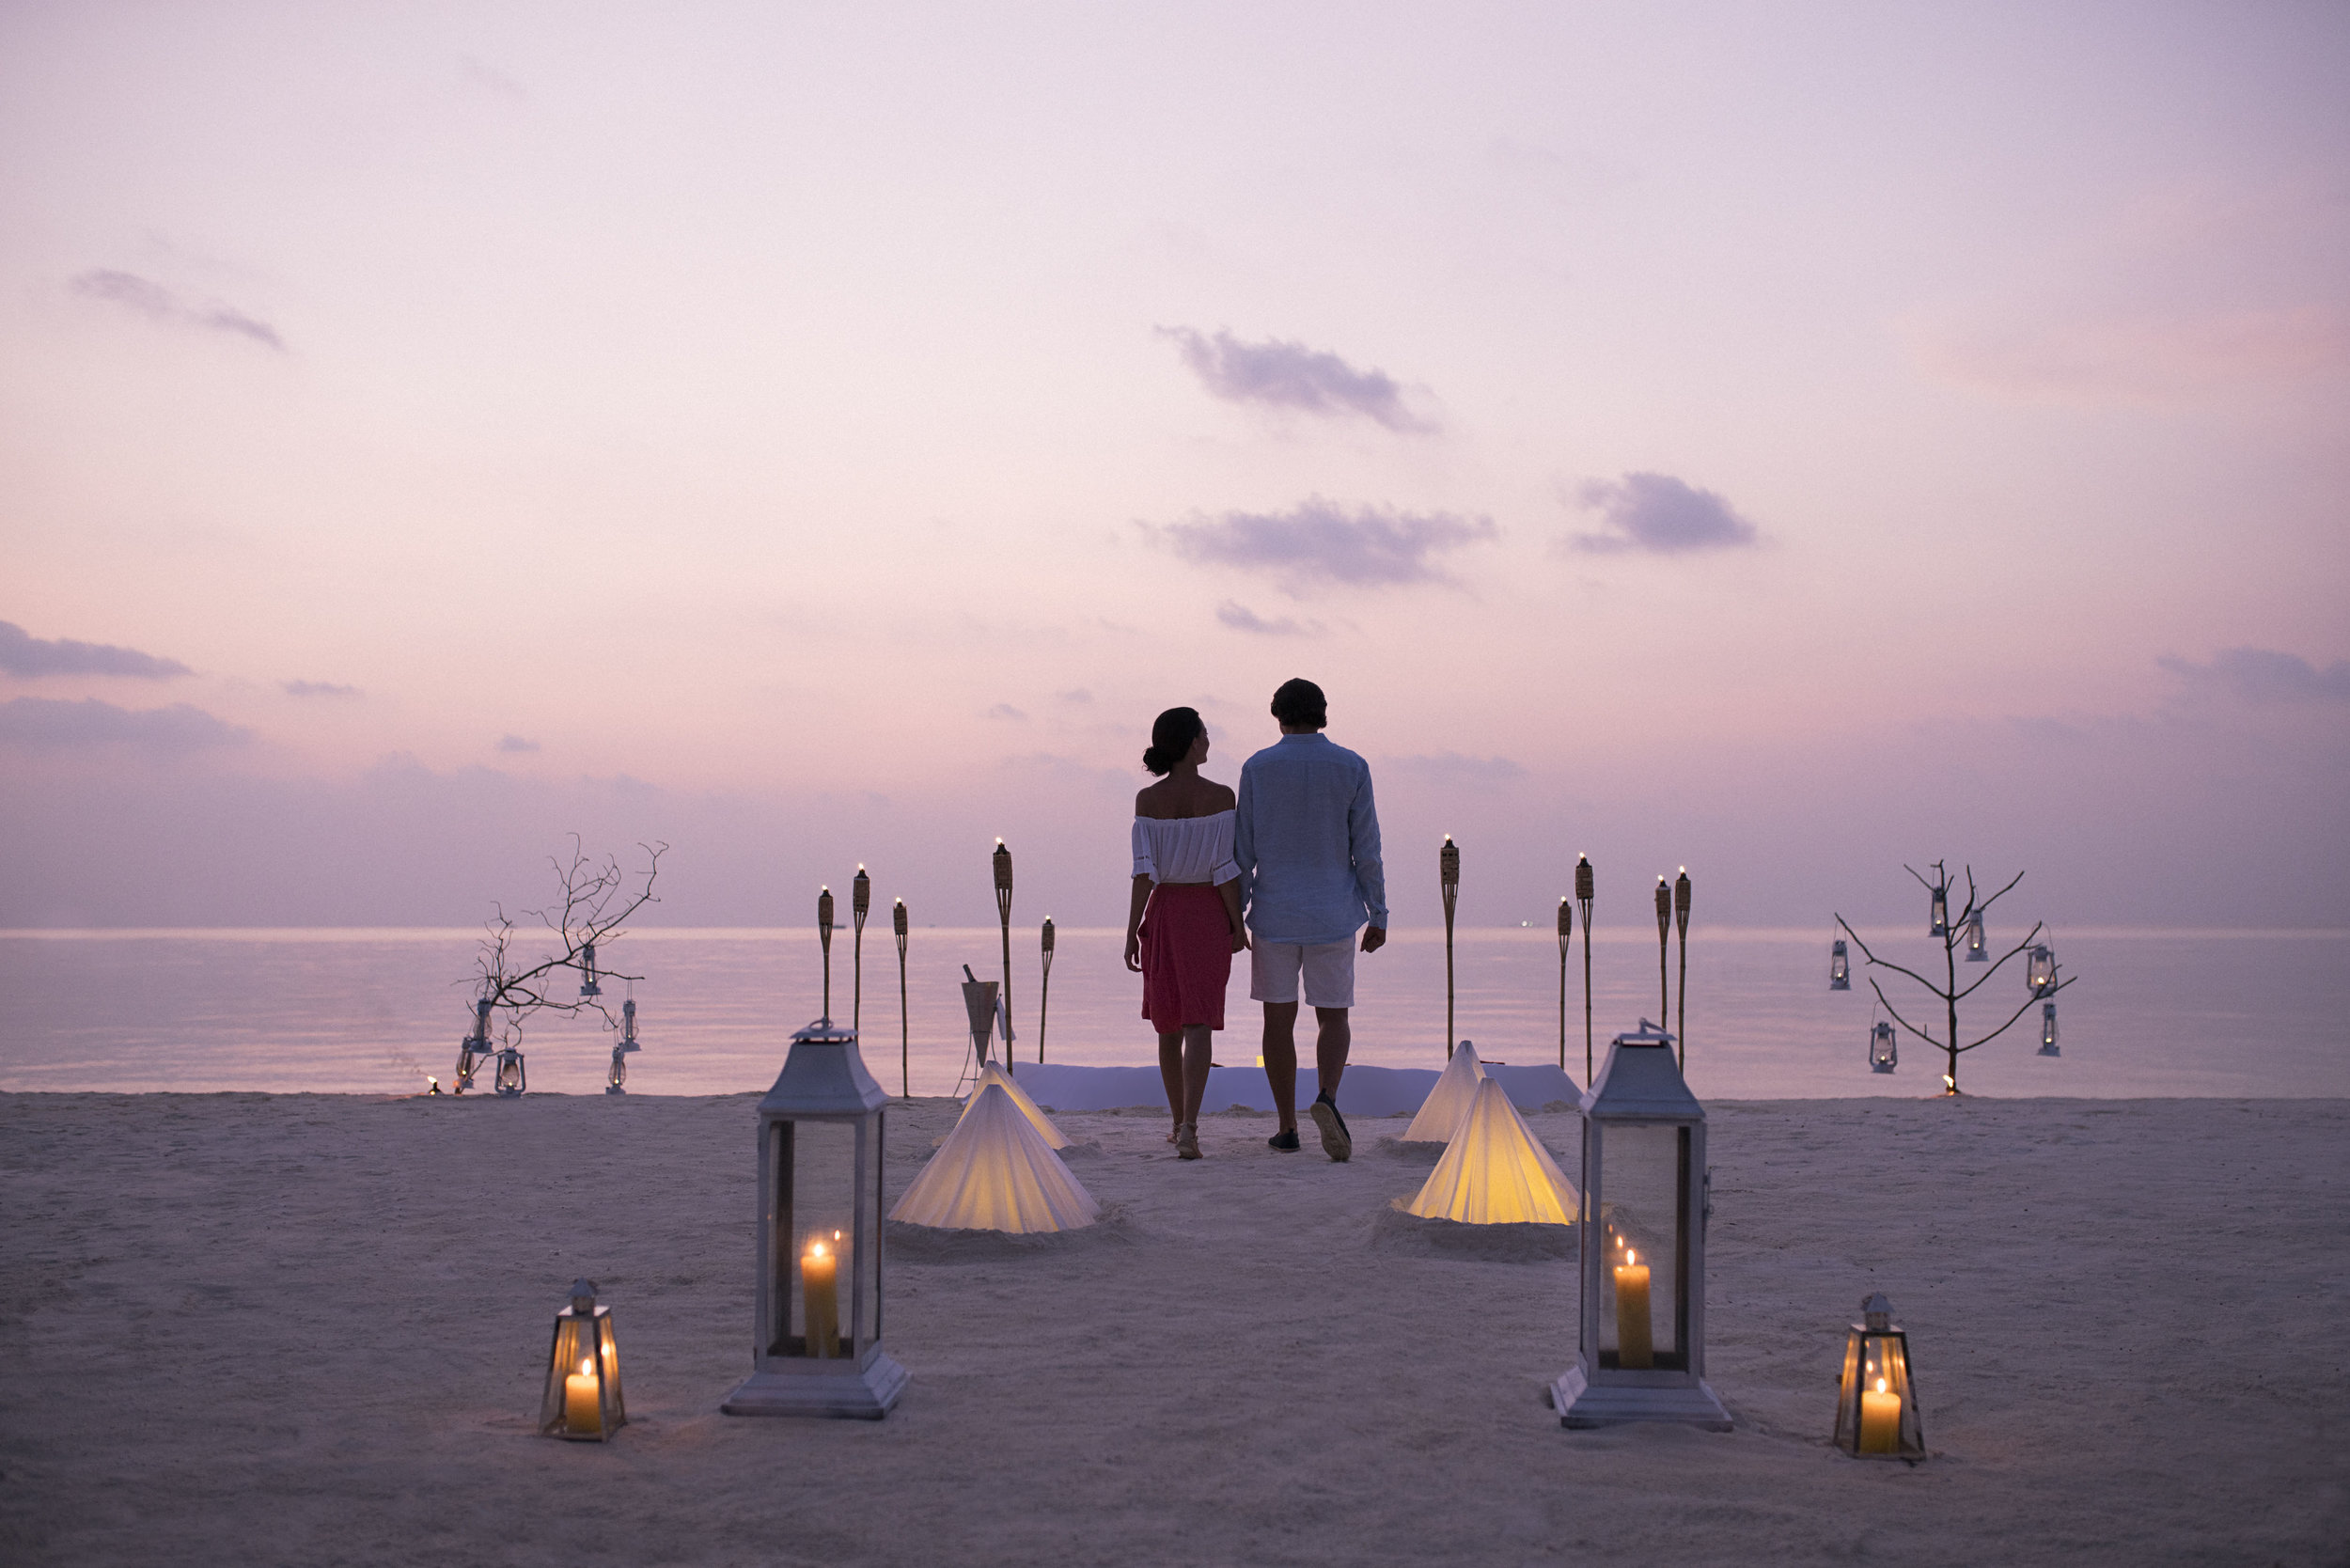 Anantara_Dhigu_Dining_By_Design_Couple.jpg